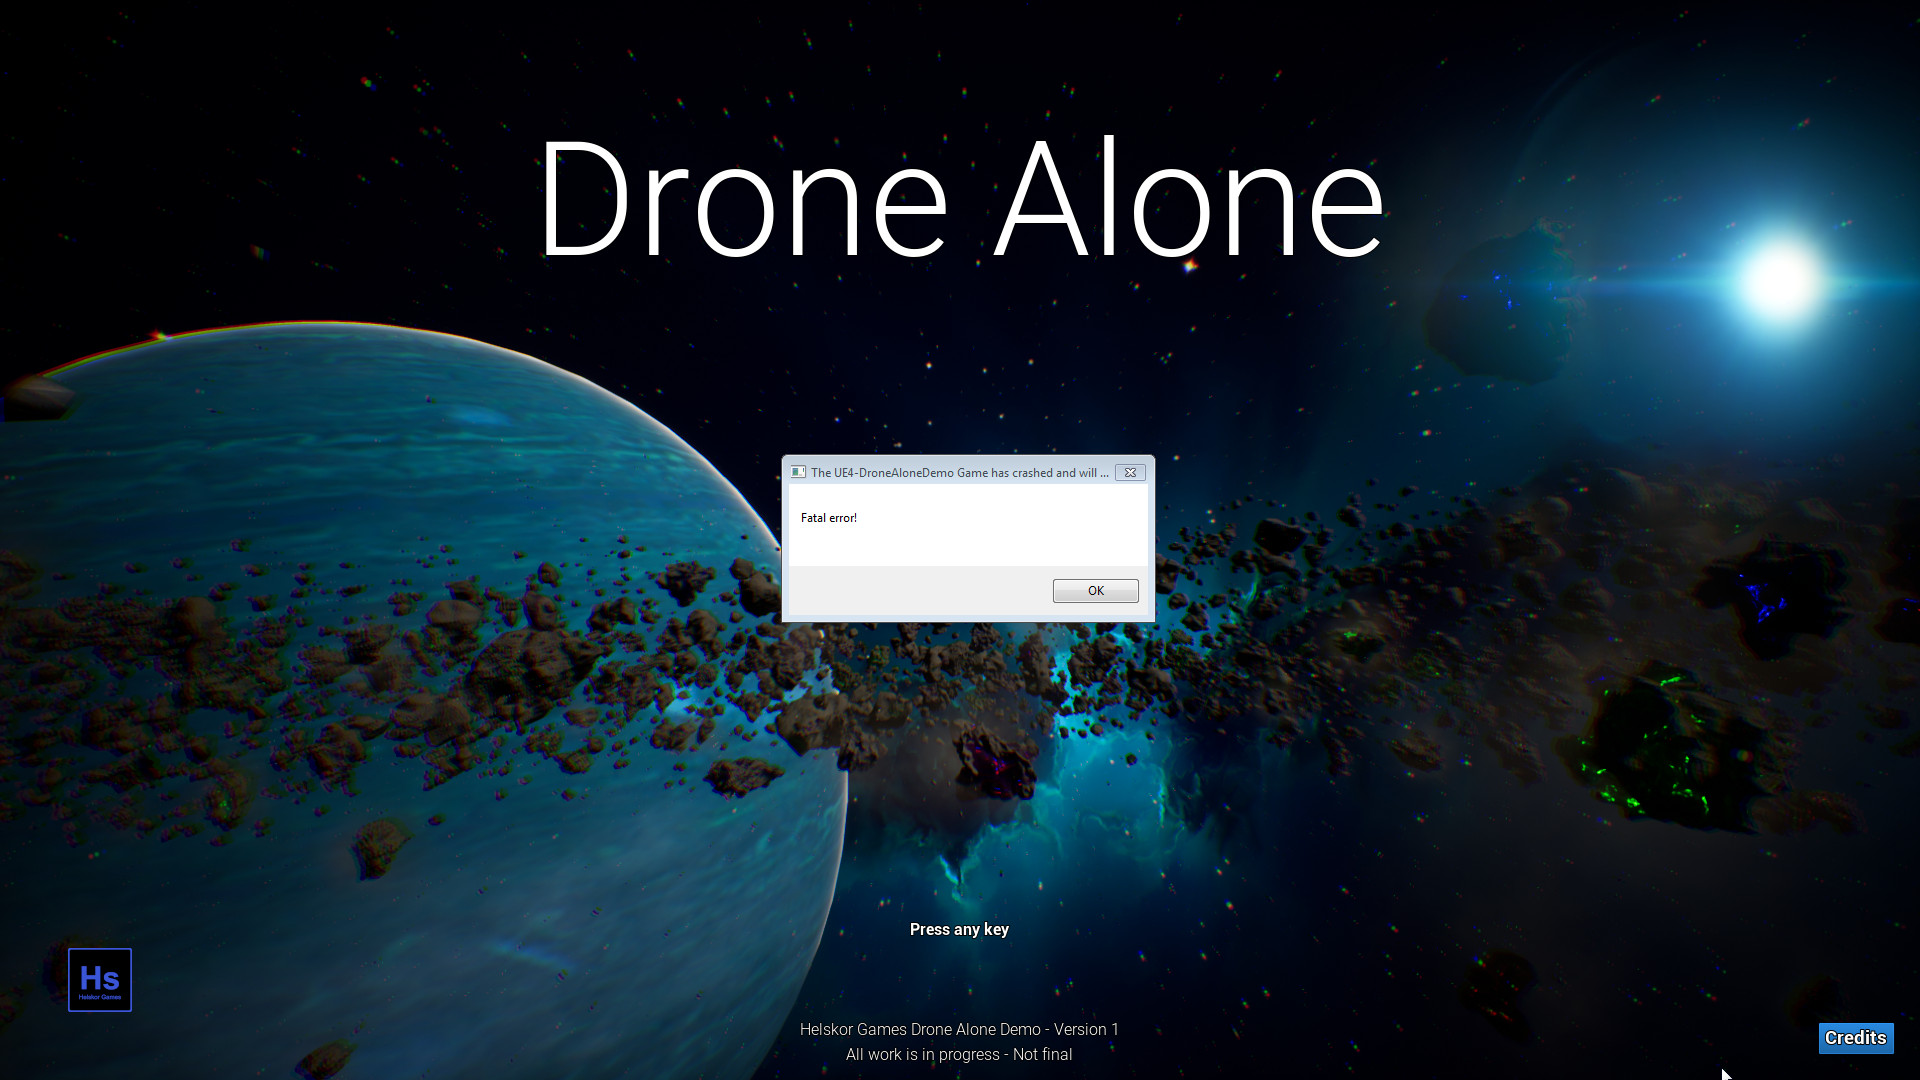 Drone Alone (demo) by Helskor Games